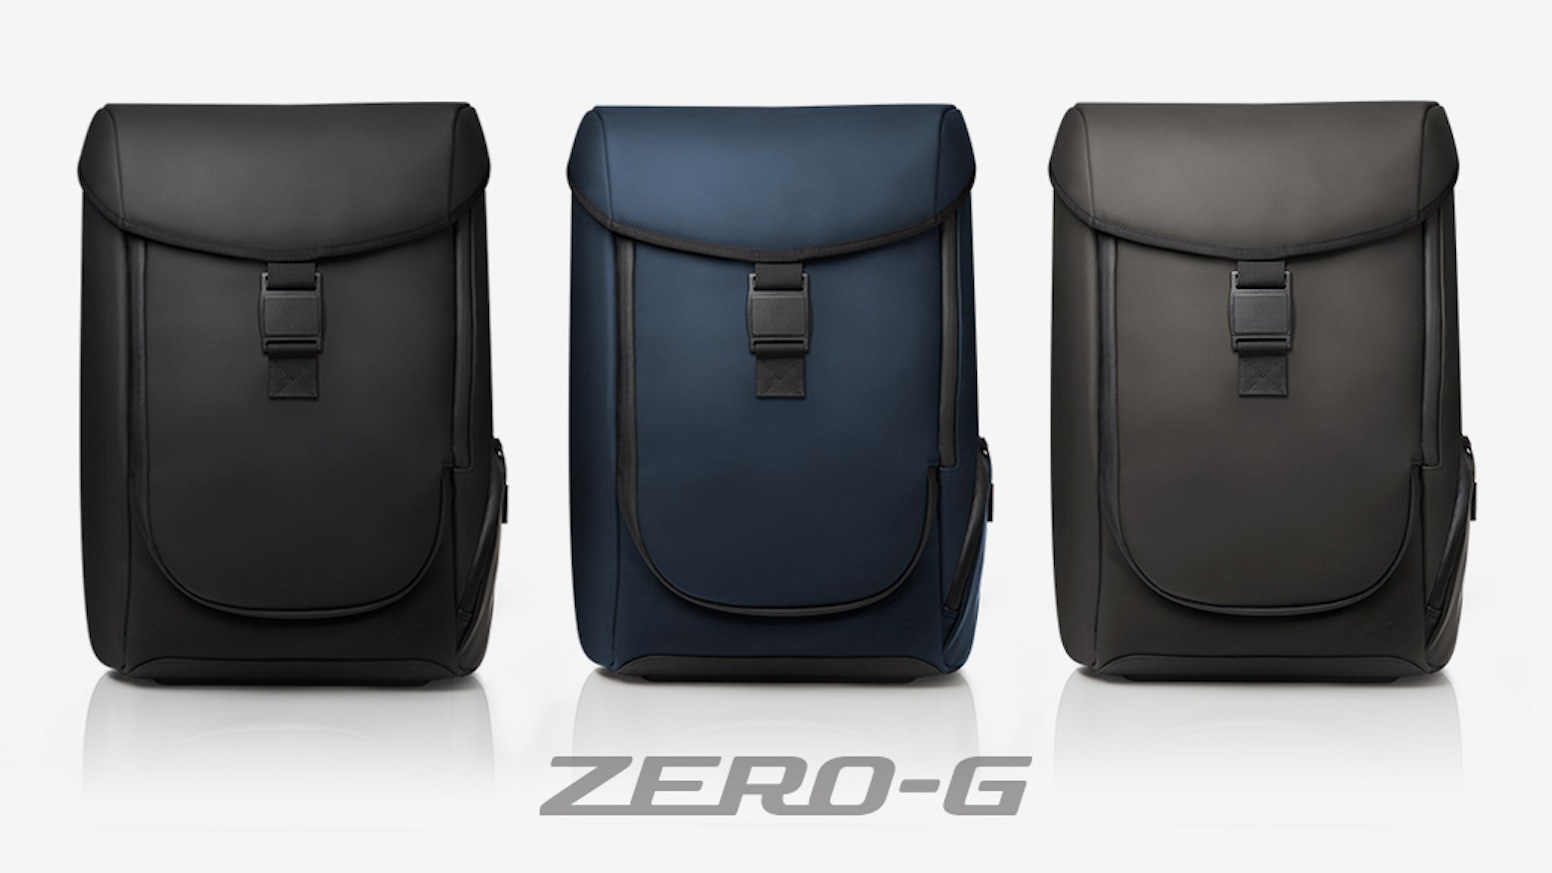 The world's first backpack designed to make twenty pounds feel like ten.